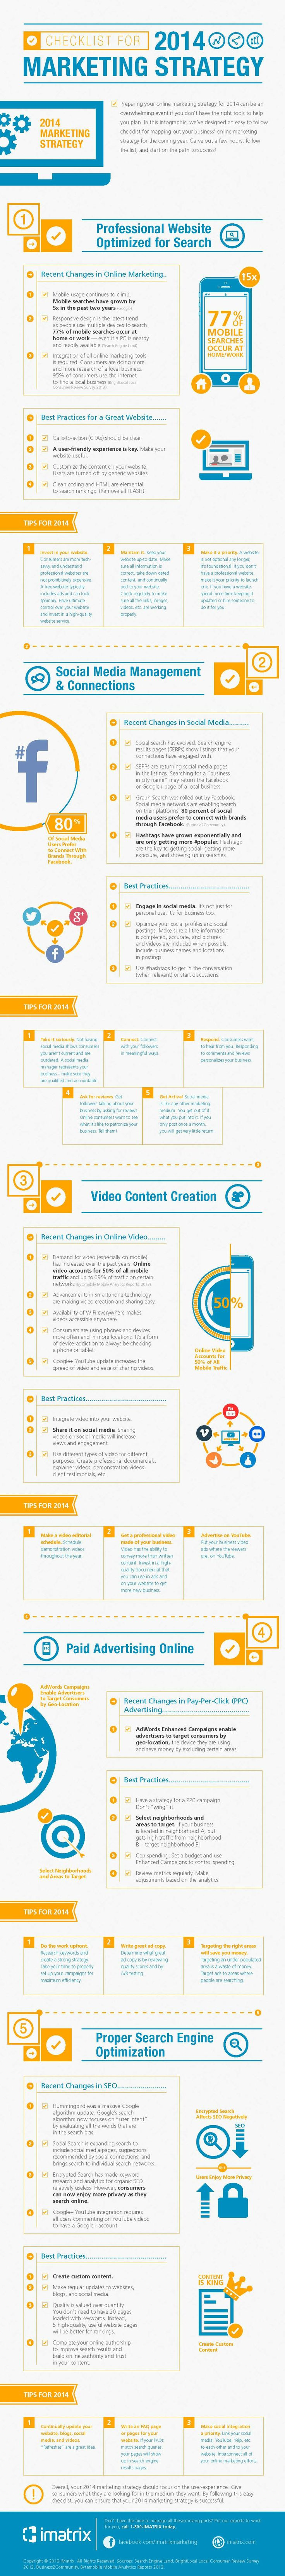 http://www.imatrix.com - Creating your online marketing strategy for 2014 can be an exhausting event if you don't have the right resources to help you strategize. In this infographic, we have come up with an easy to follow checklist for creating your business' online marketing strategy for the upcoming year.